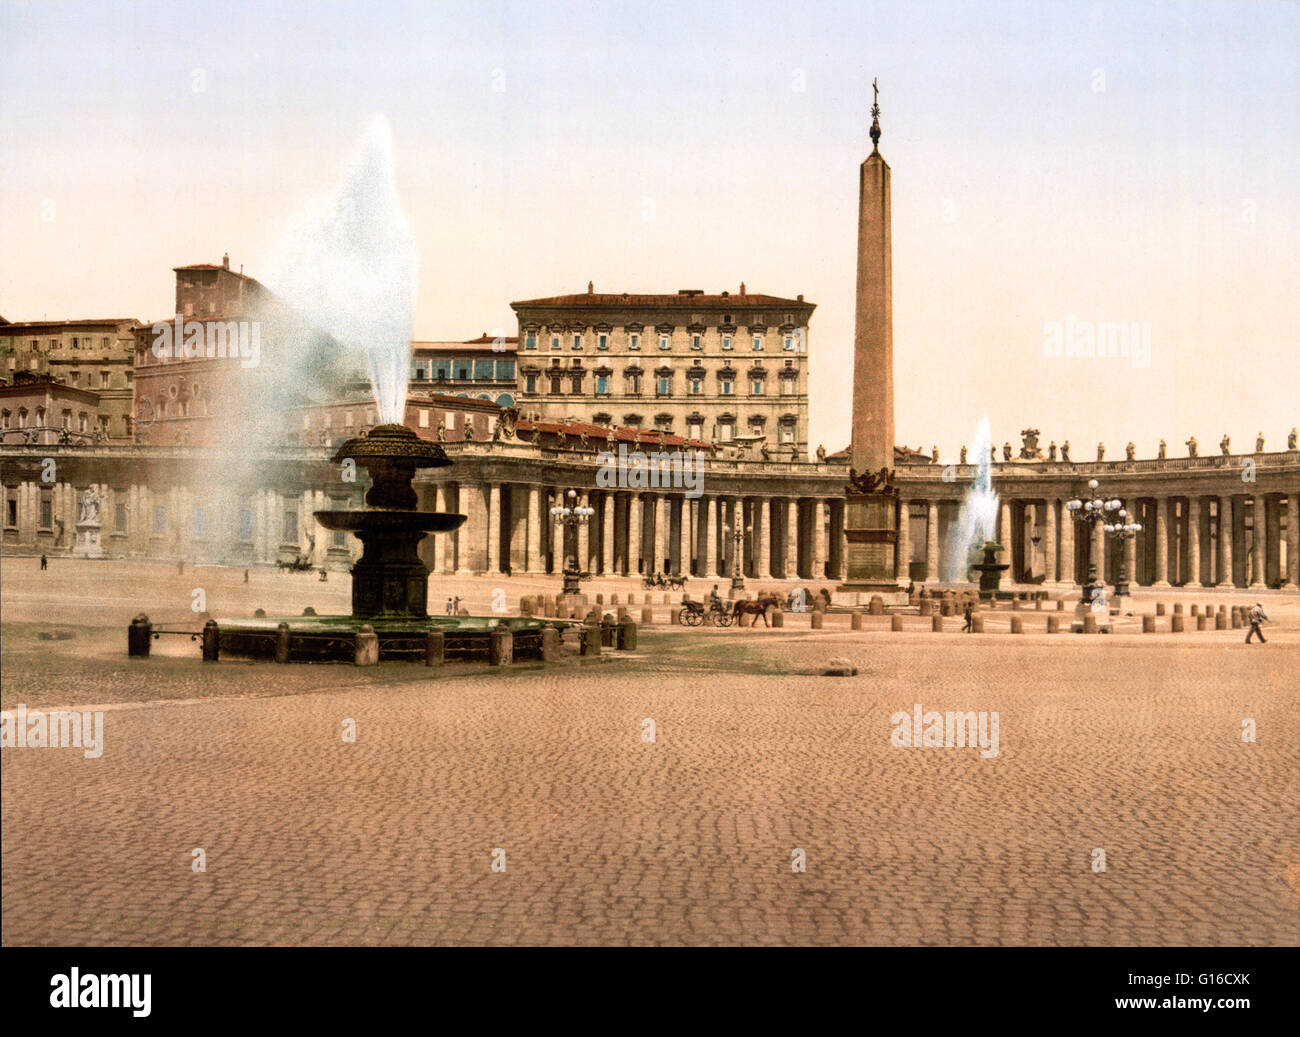 St. Peter's Square is a massive plaza located directly in front of St. Peter's Basilica in the Vatican City, - Stock Image